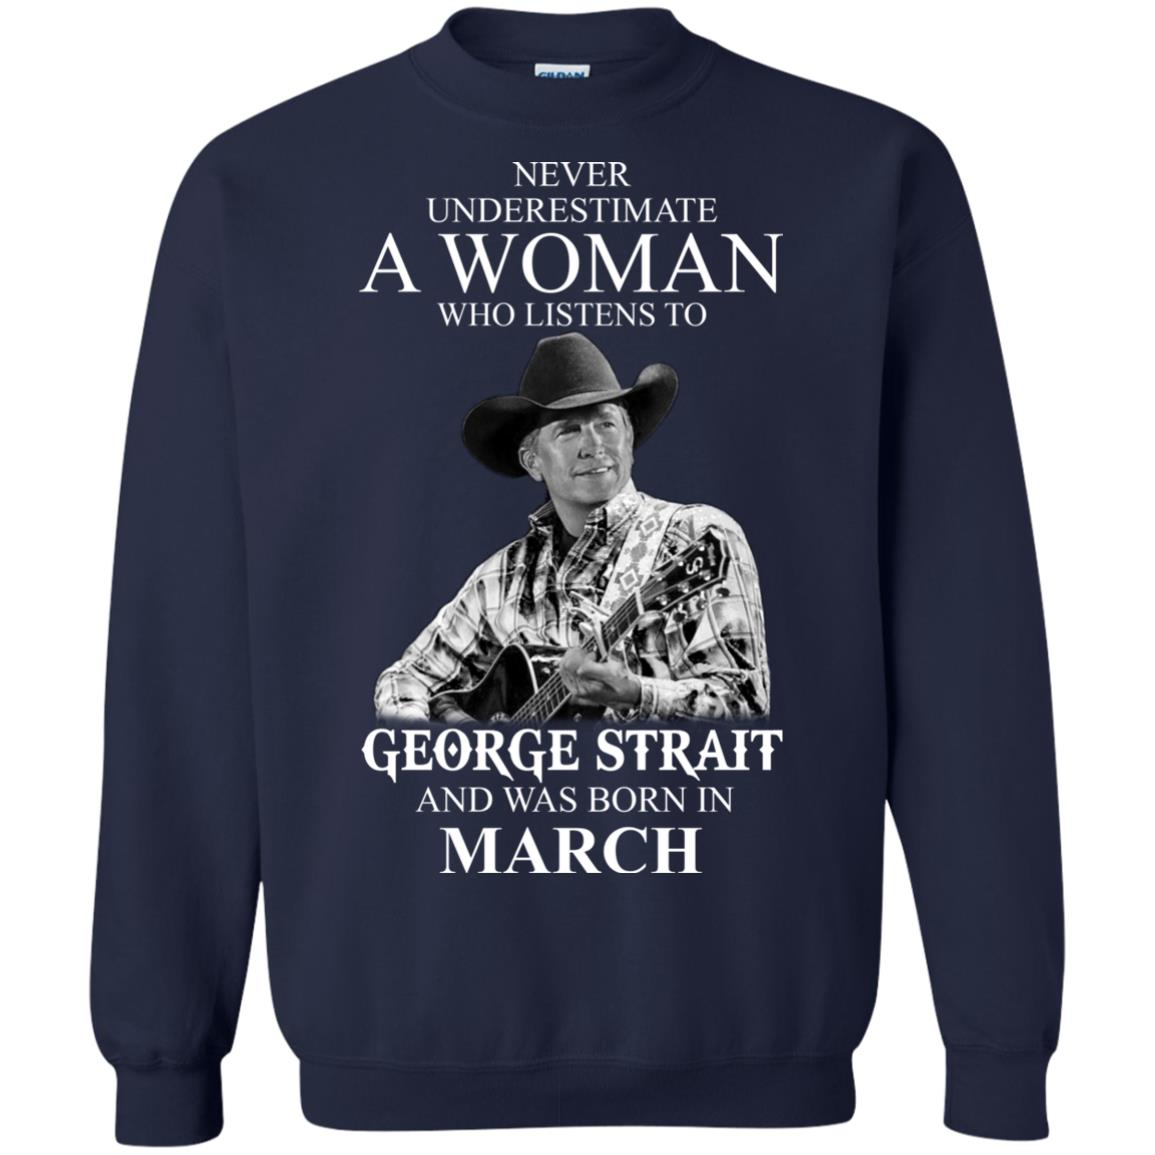 image 441 - Never Underestimate A Woman Who Listens To George Strait And Was Born In March shirt